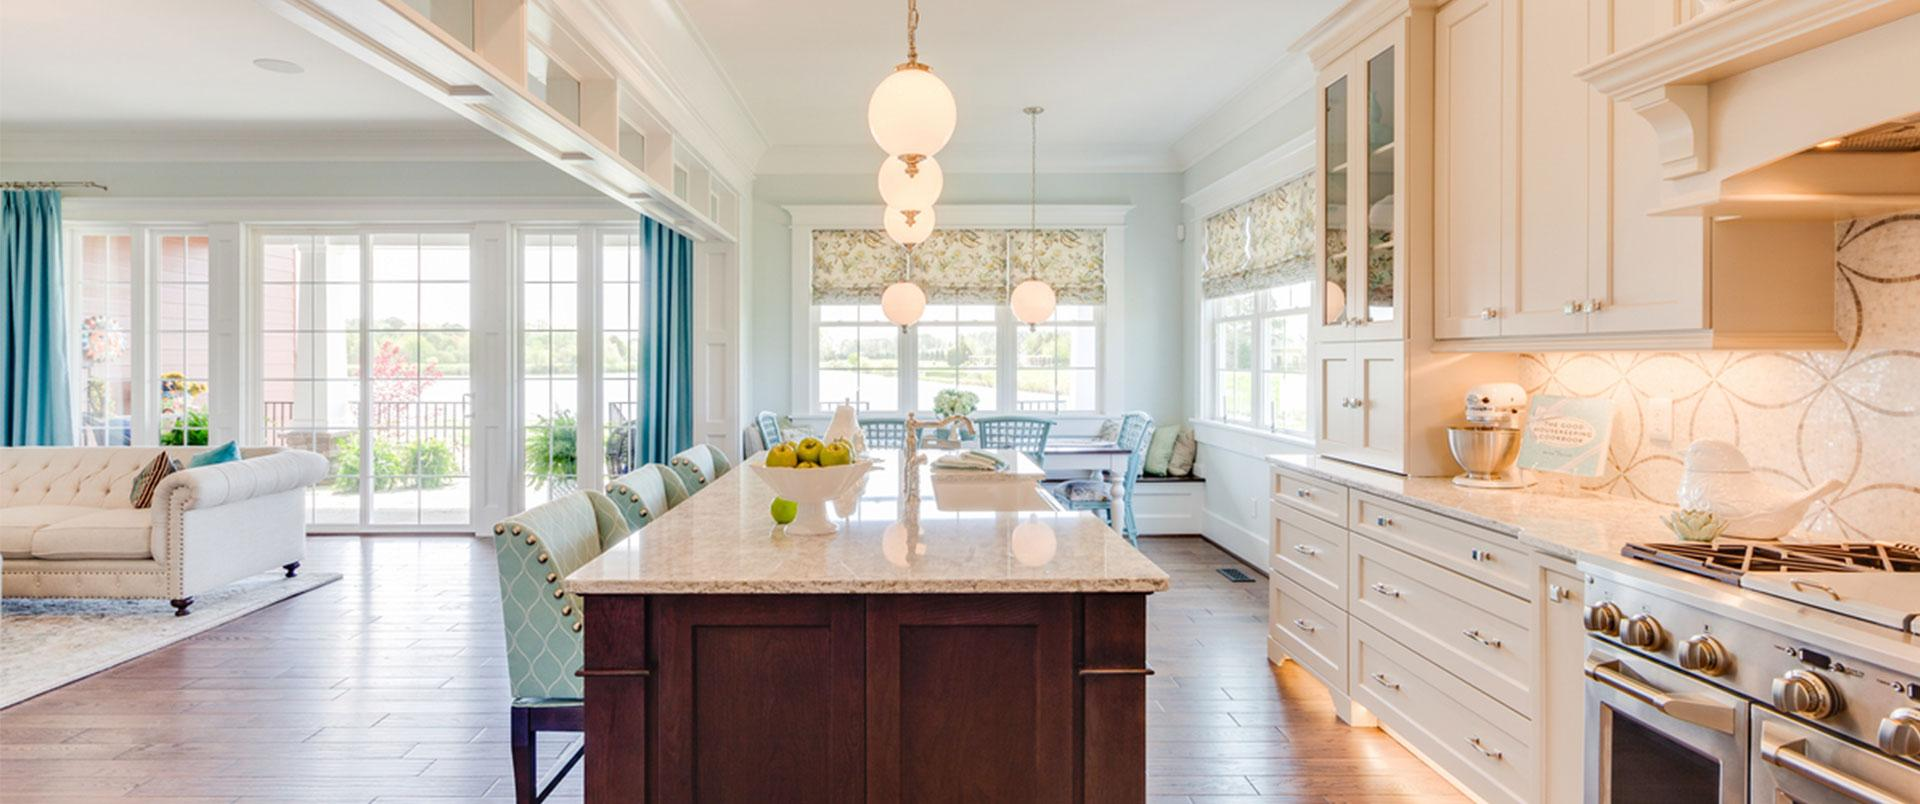 Weldenfield & Rowe Kitchen Design